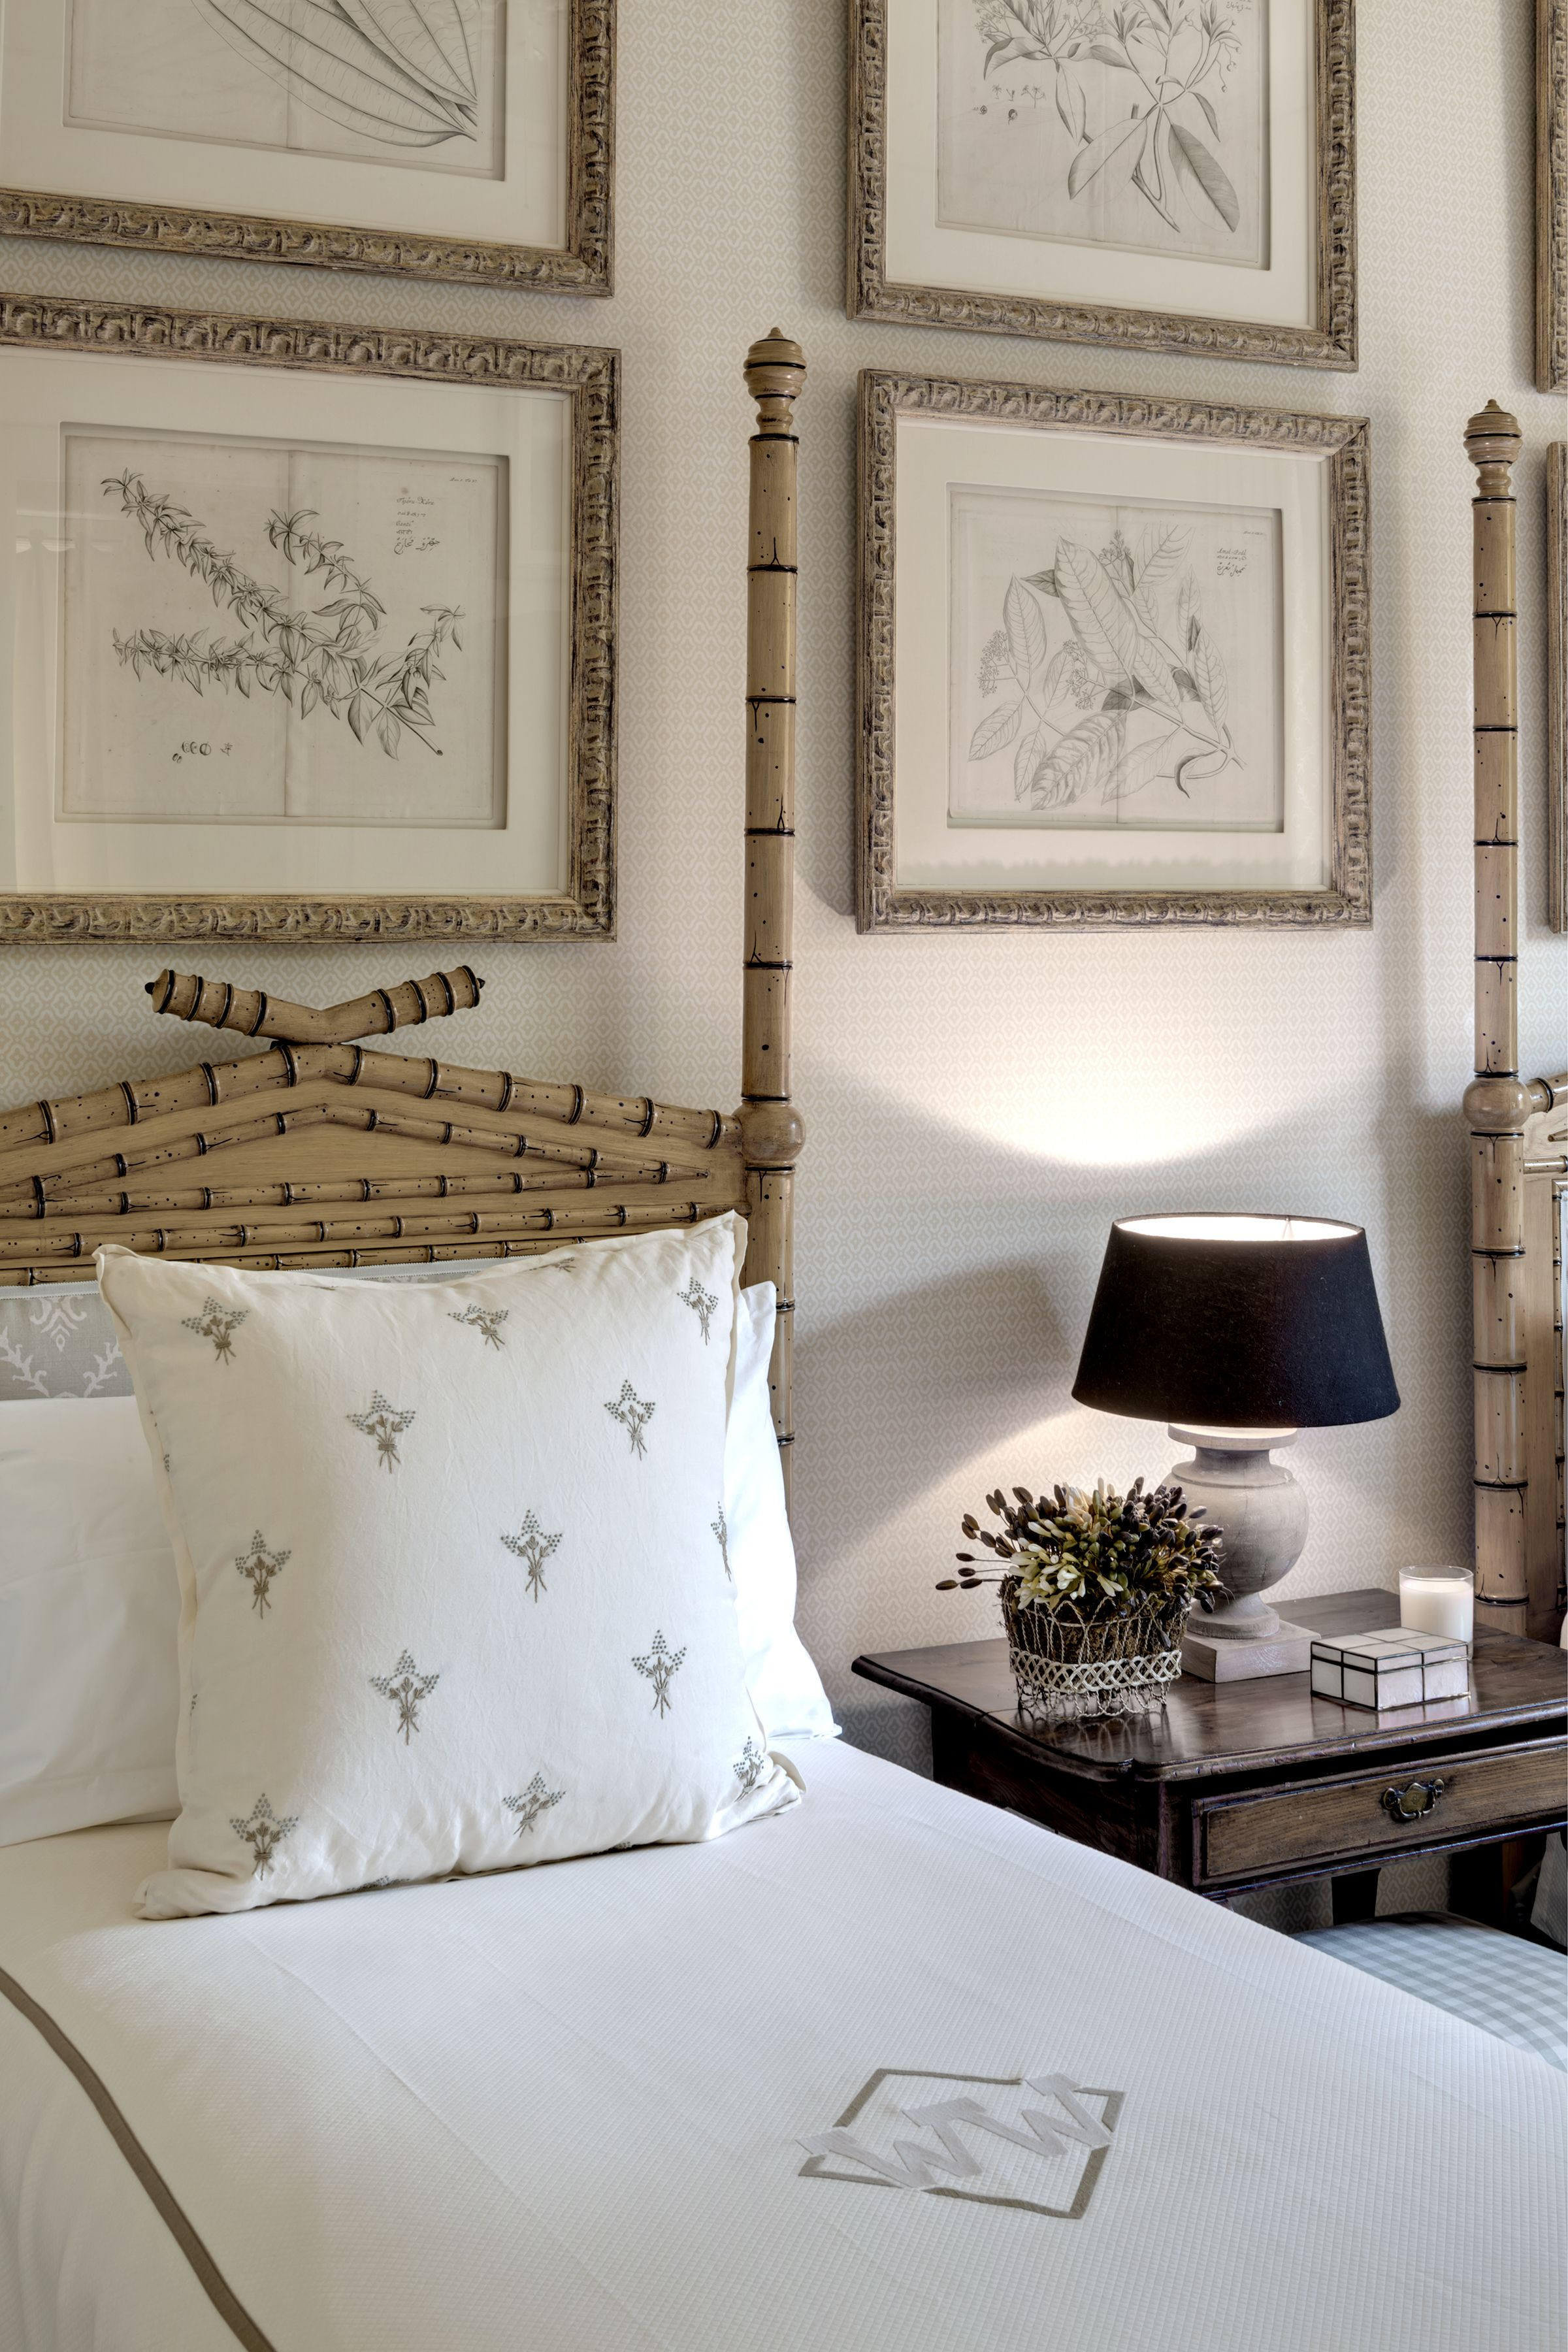 1 2 3 Totally Easy Decorating Ideas For Your Walls Home Bedroom